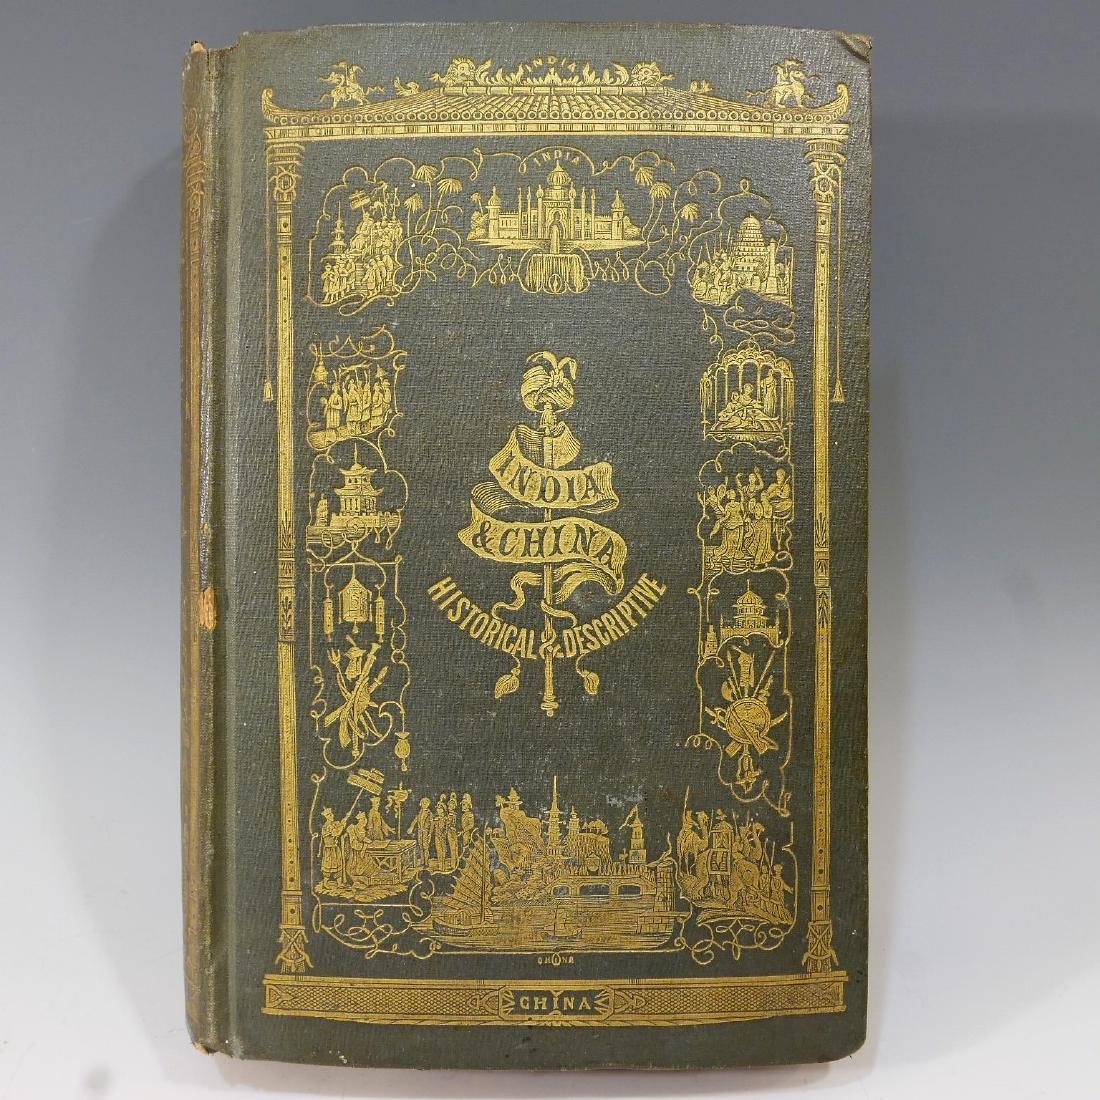 ANTIQUE BOOK - HISTORY OF CHINA AND INDIA, ROBERT SEARS